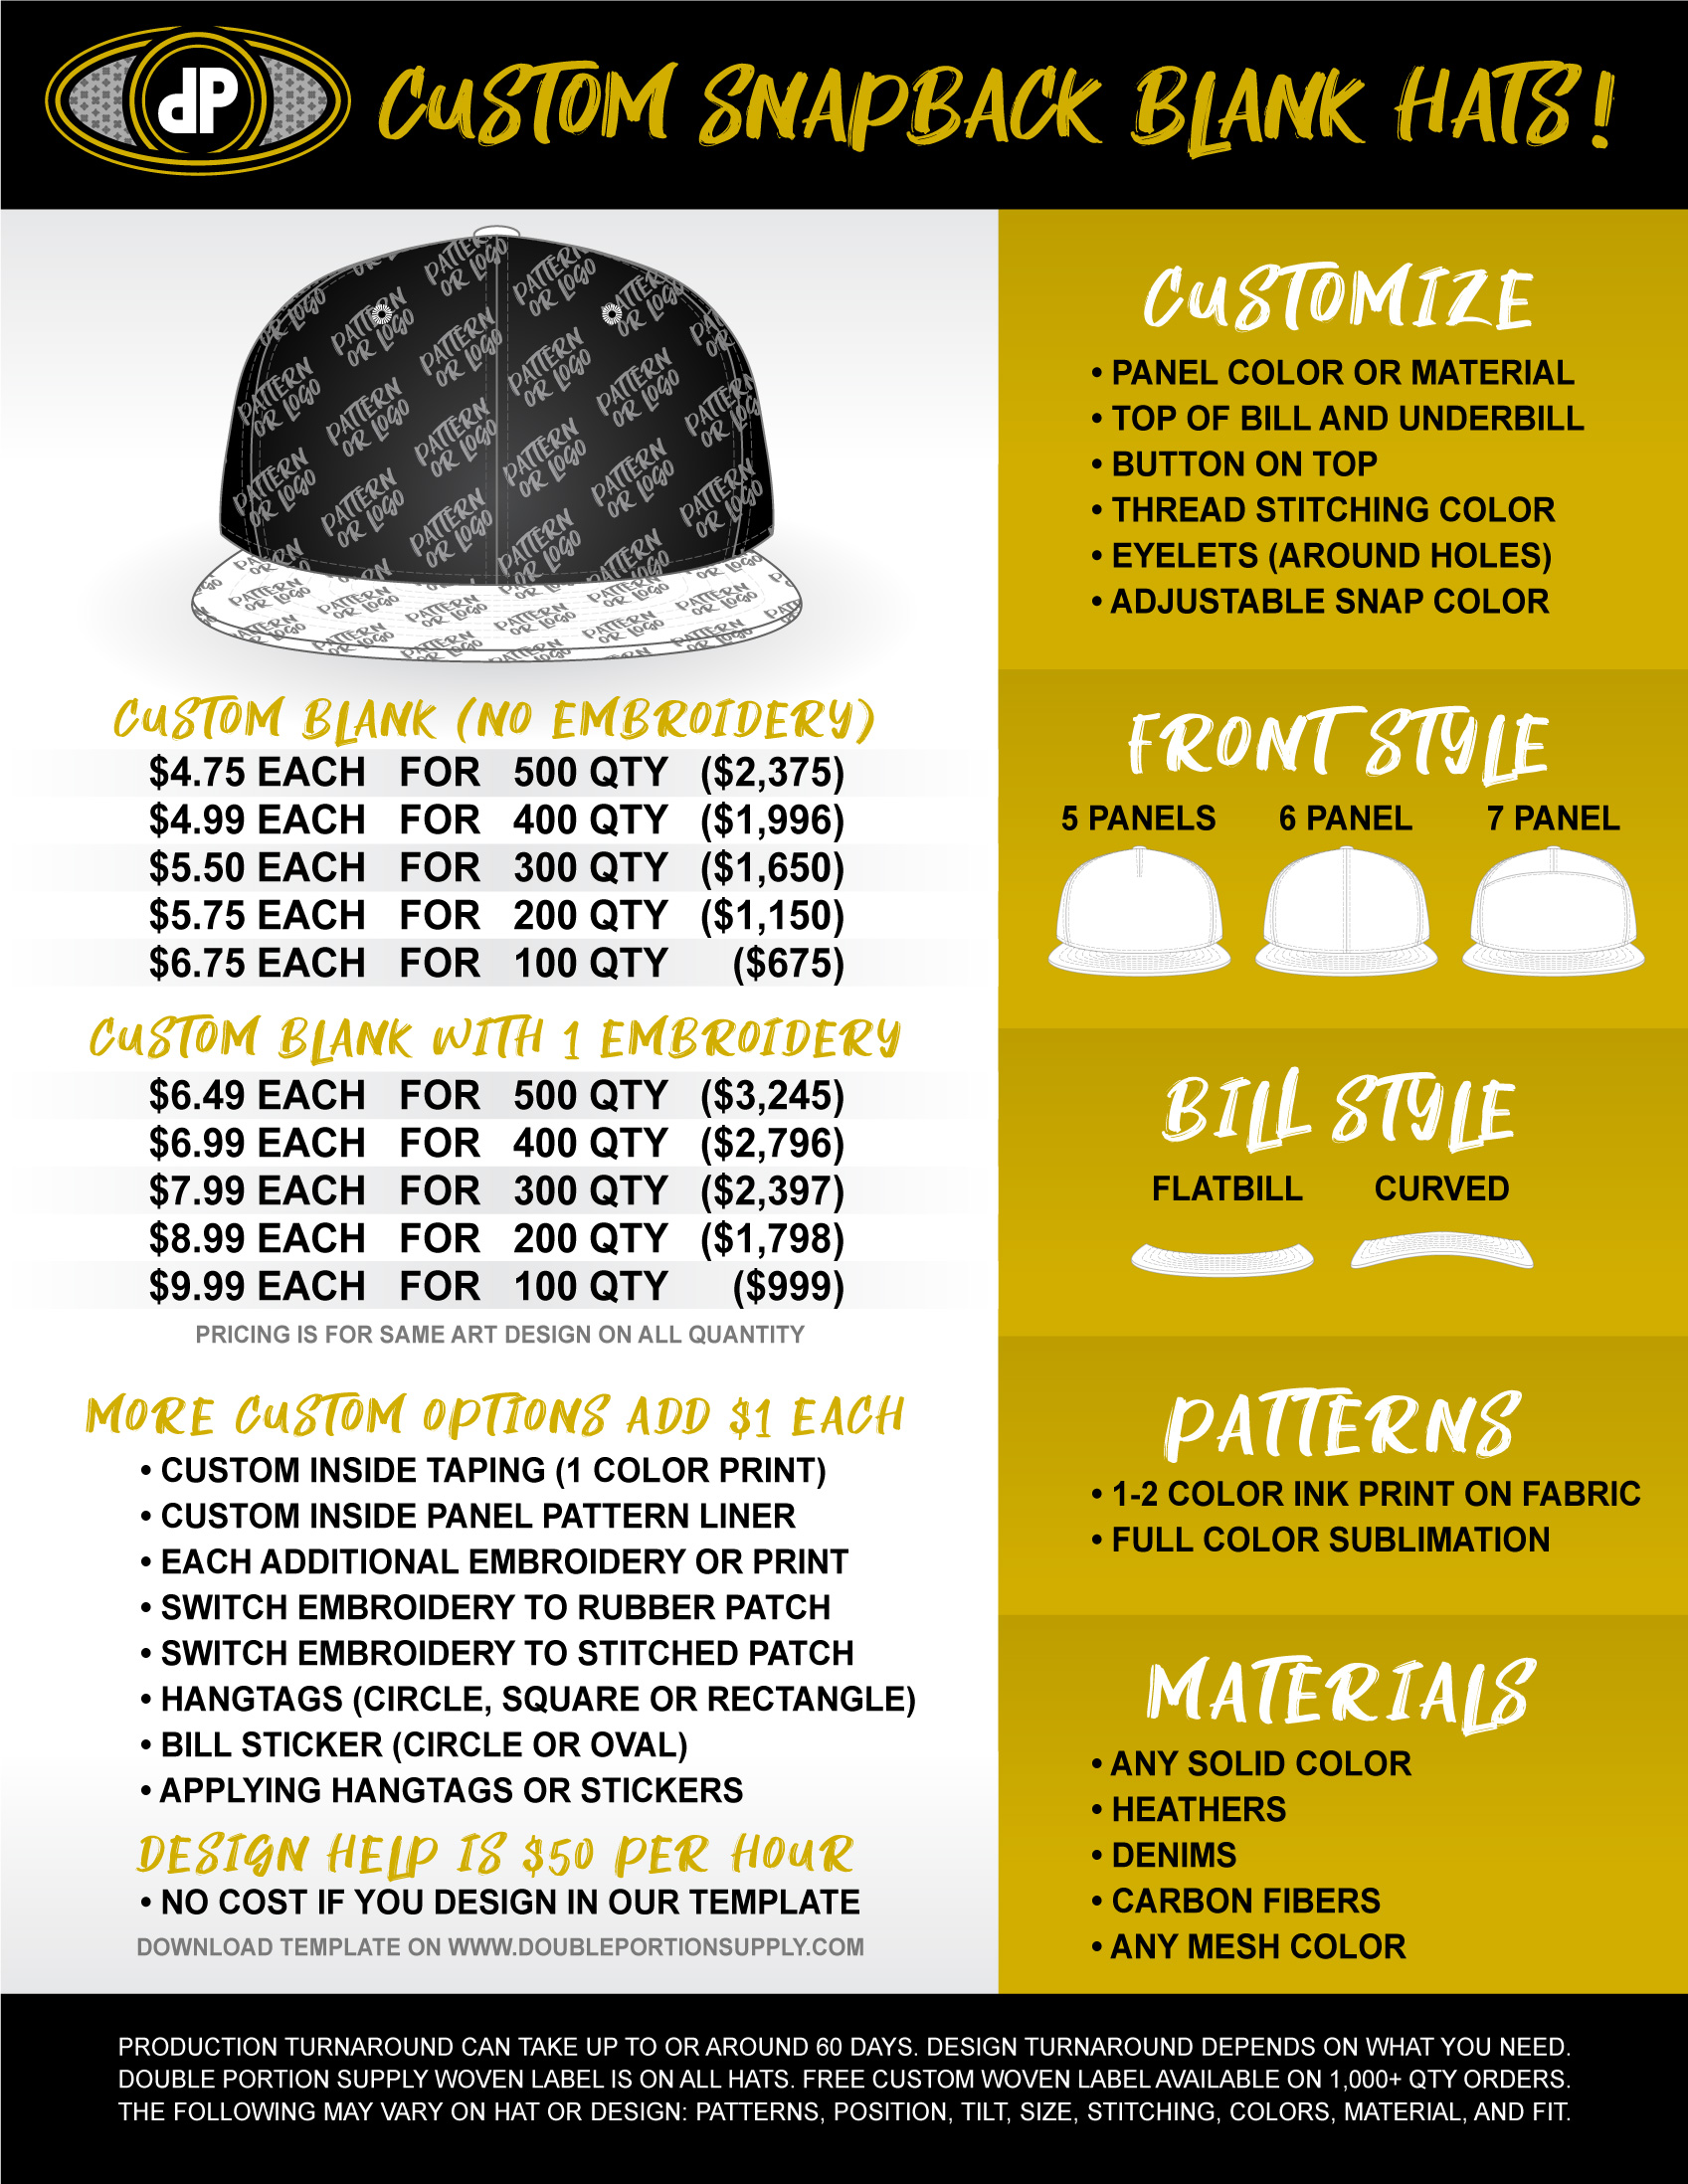 CUSTOM SNAPBACK BLANK HATS – Double Portion Supply